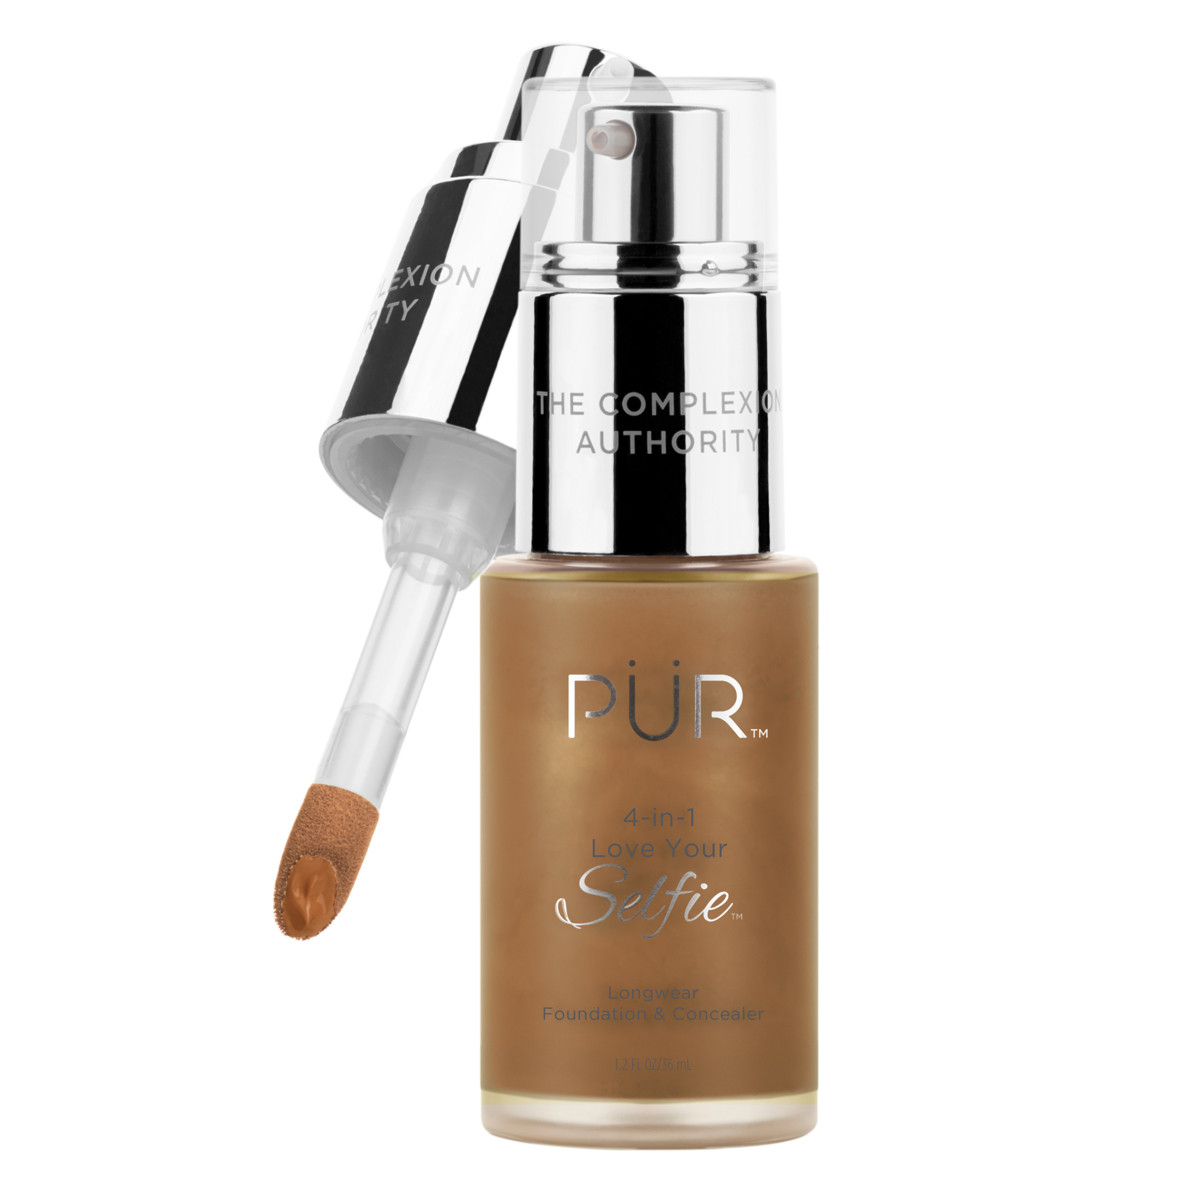 4-in-1 Love Your Selfie™ Longwear Foundation & Concealer in DG7